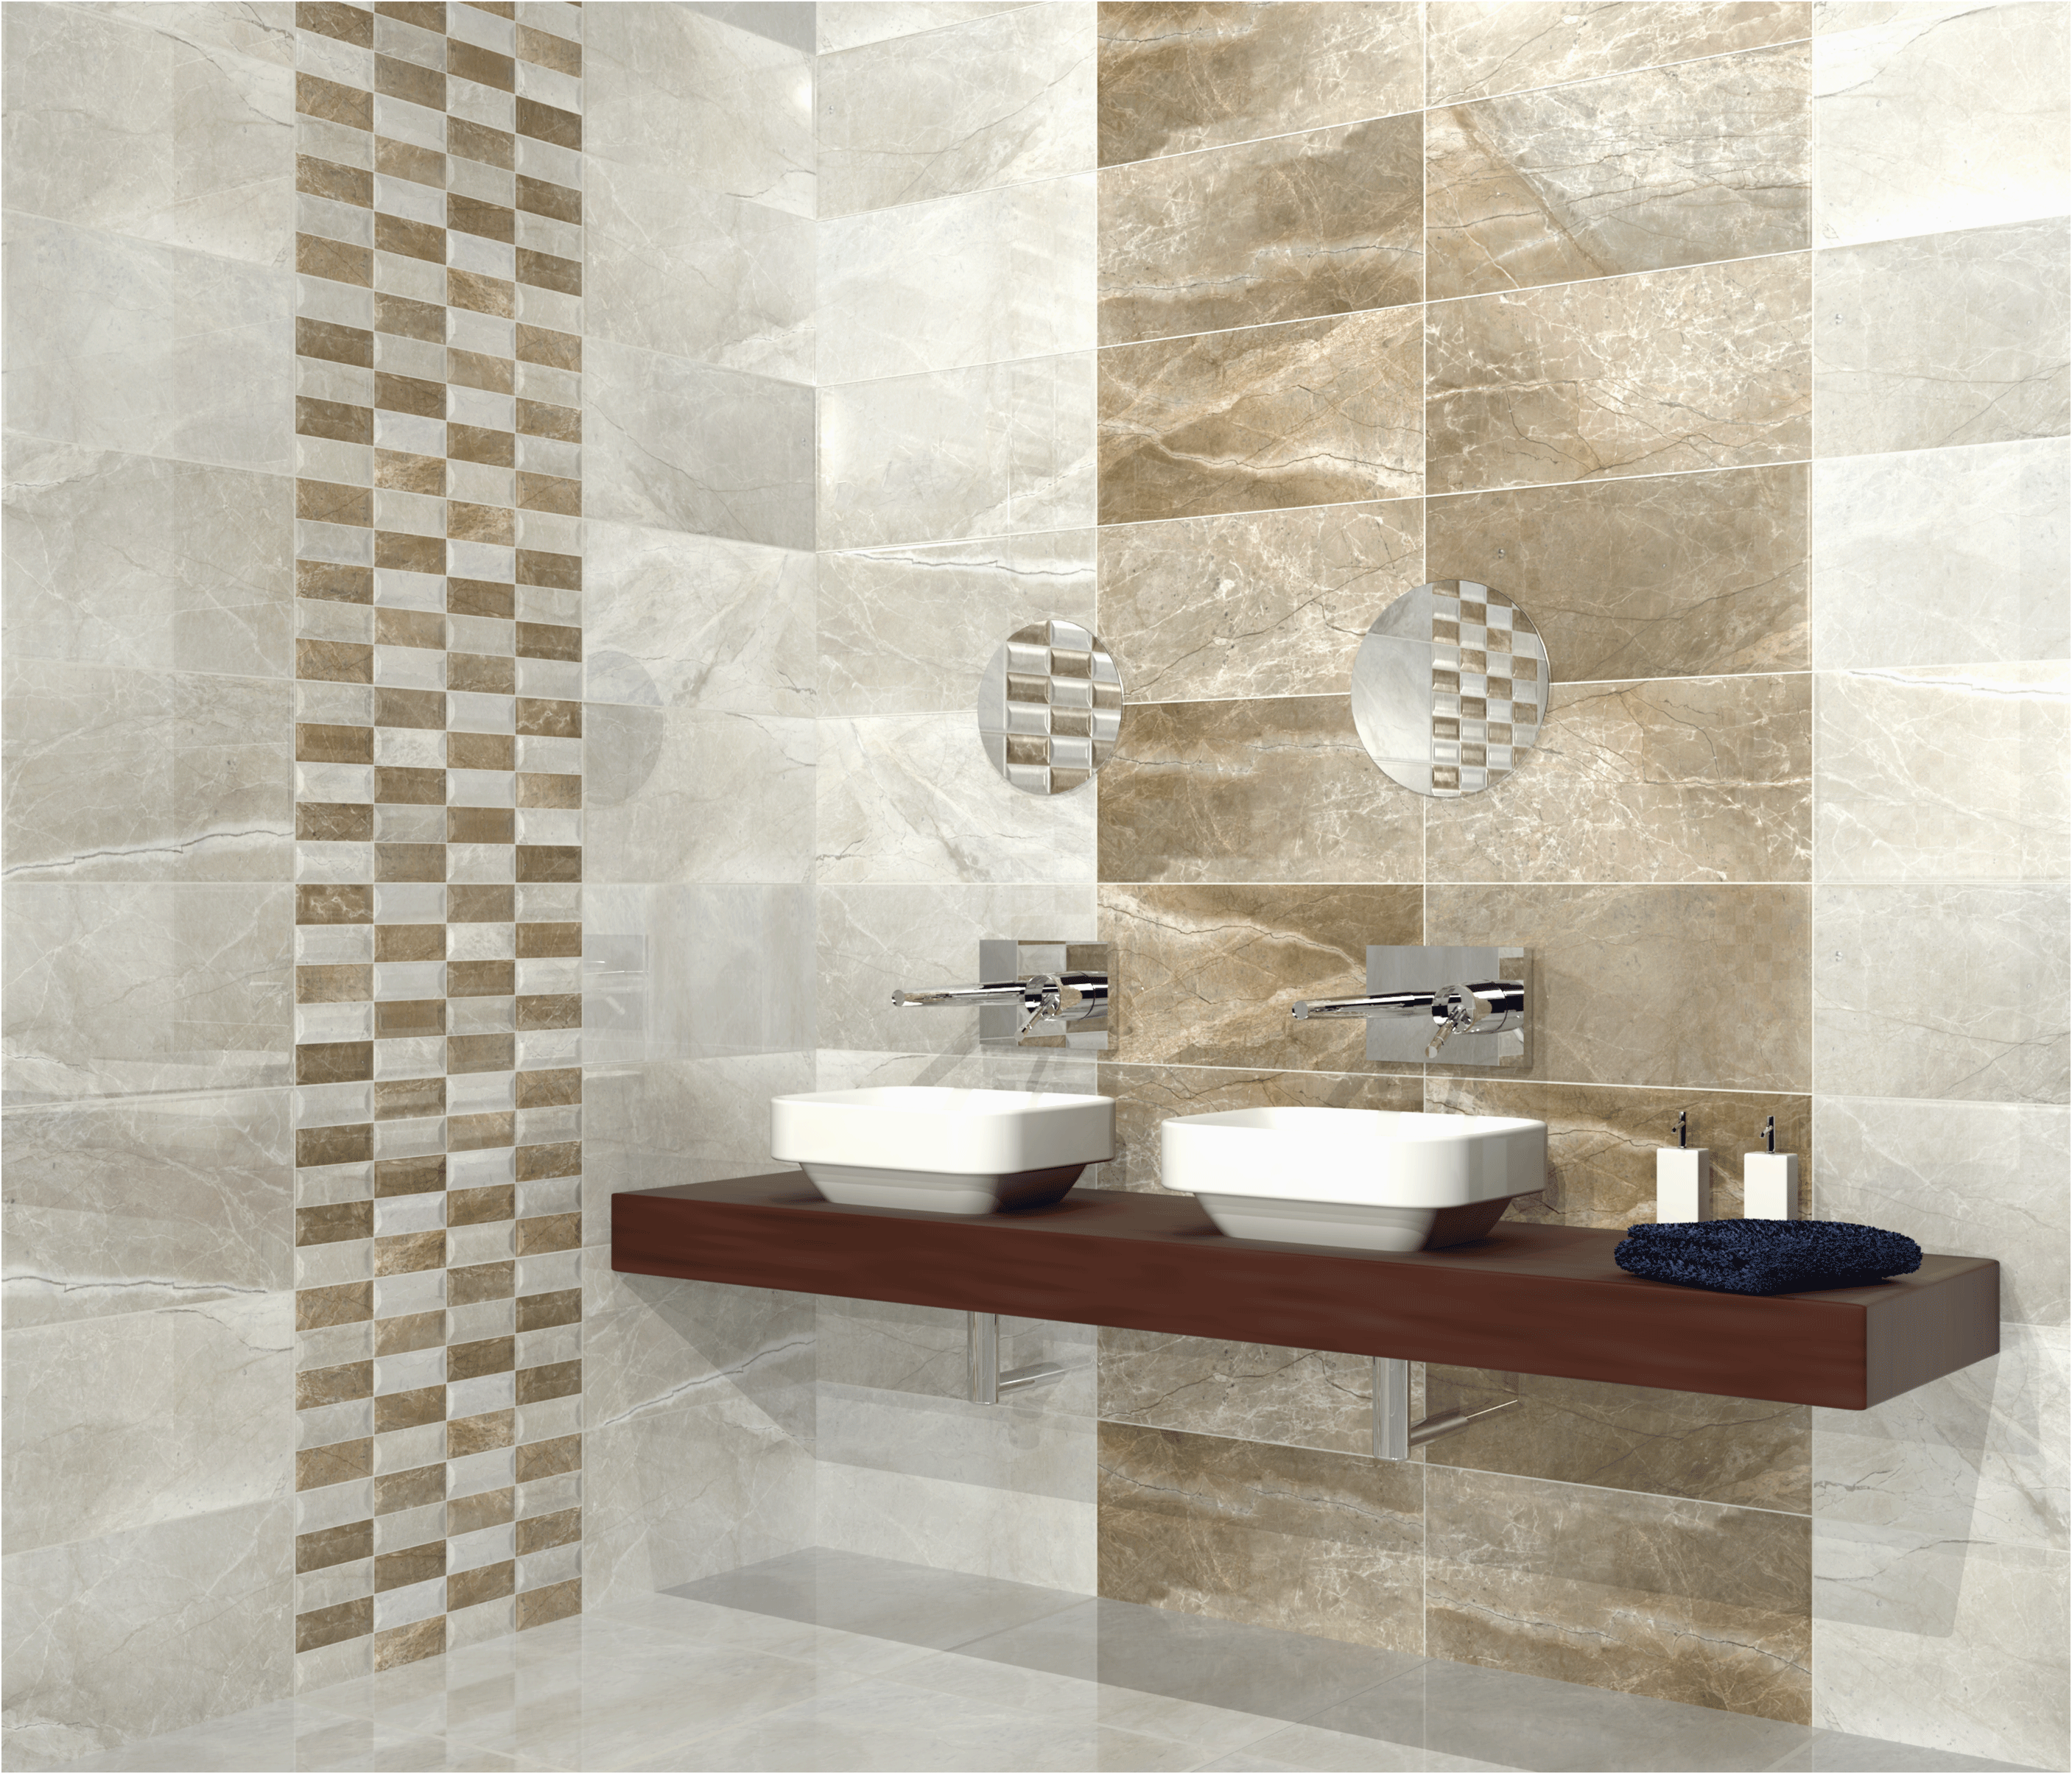 for ceramic bathroom gallery colors artistic color and schemes colours paint tiles tile floor images of bathrooms